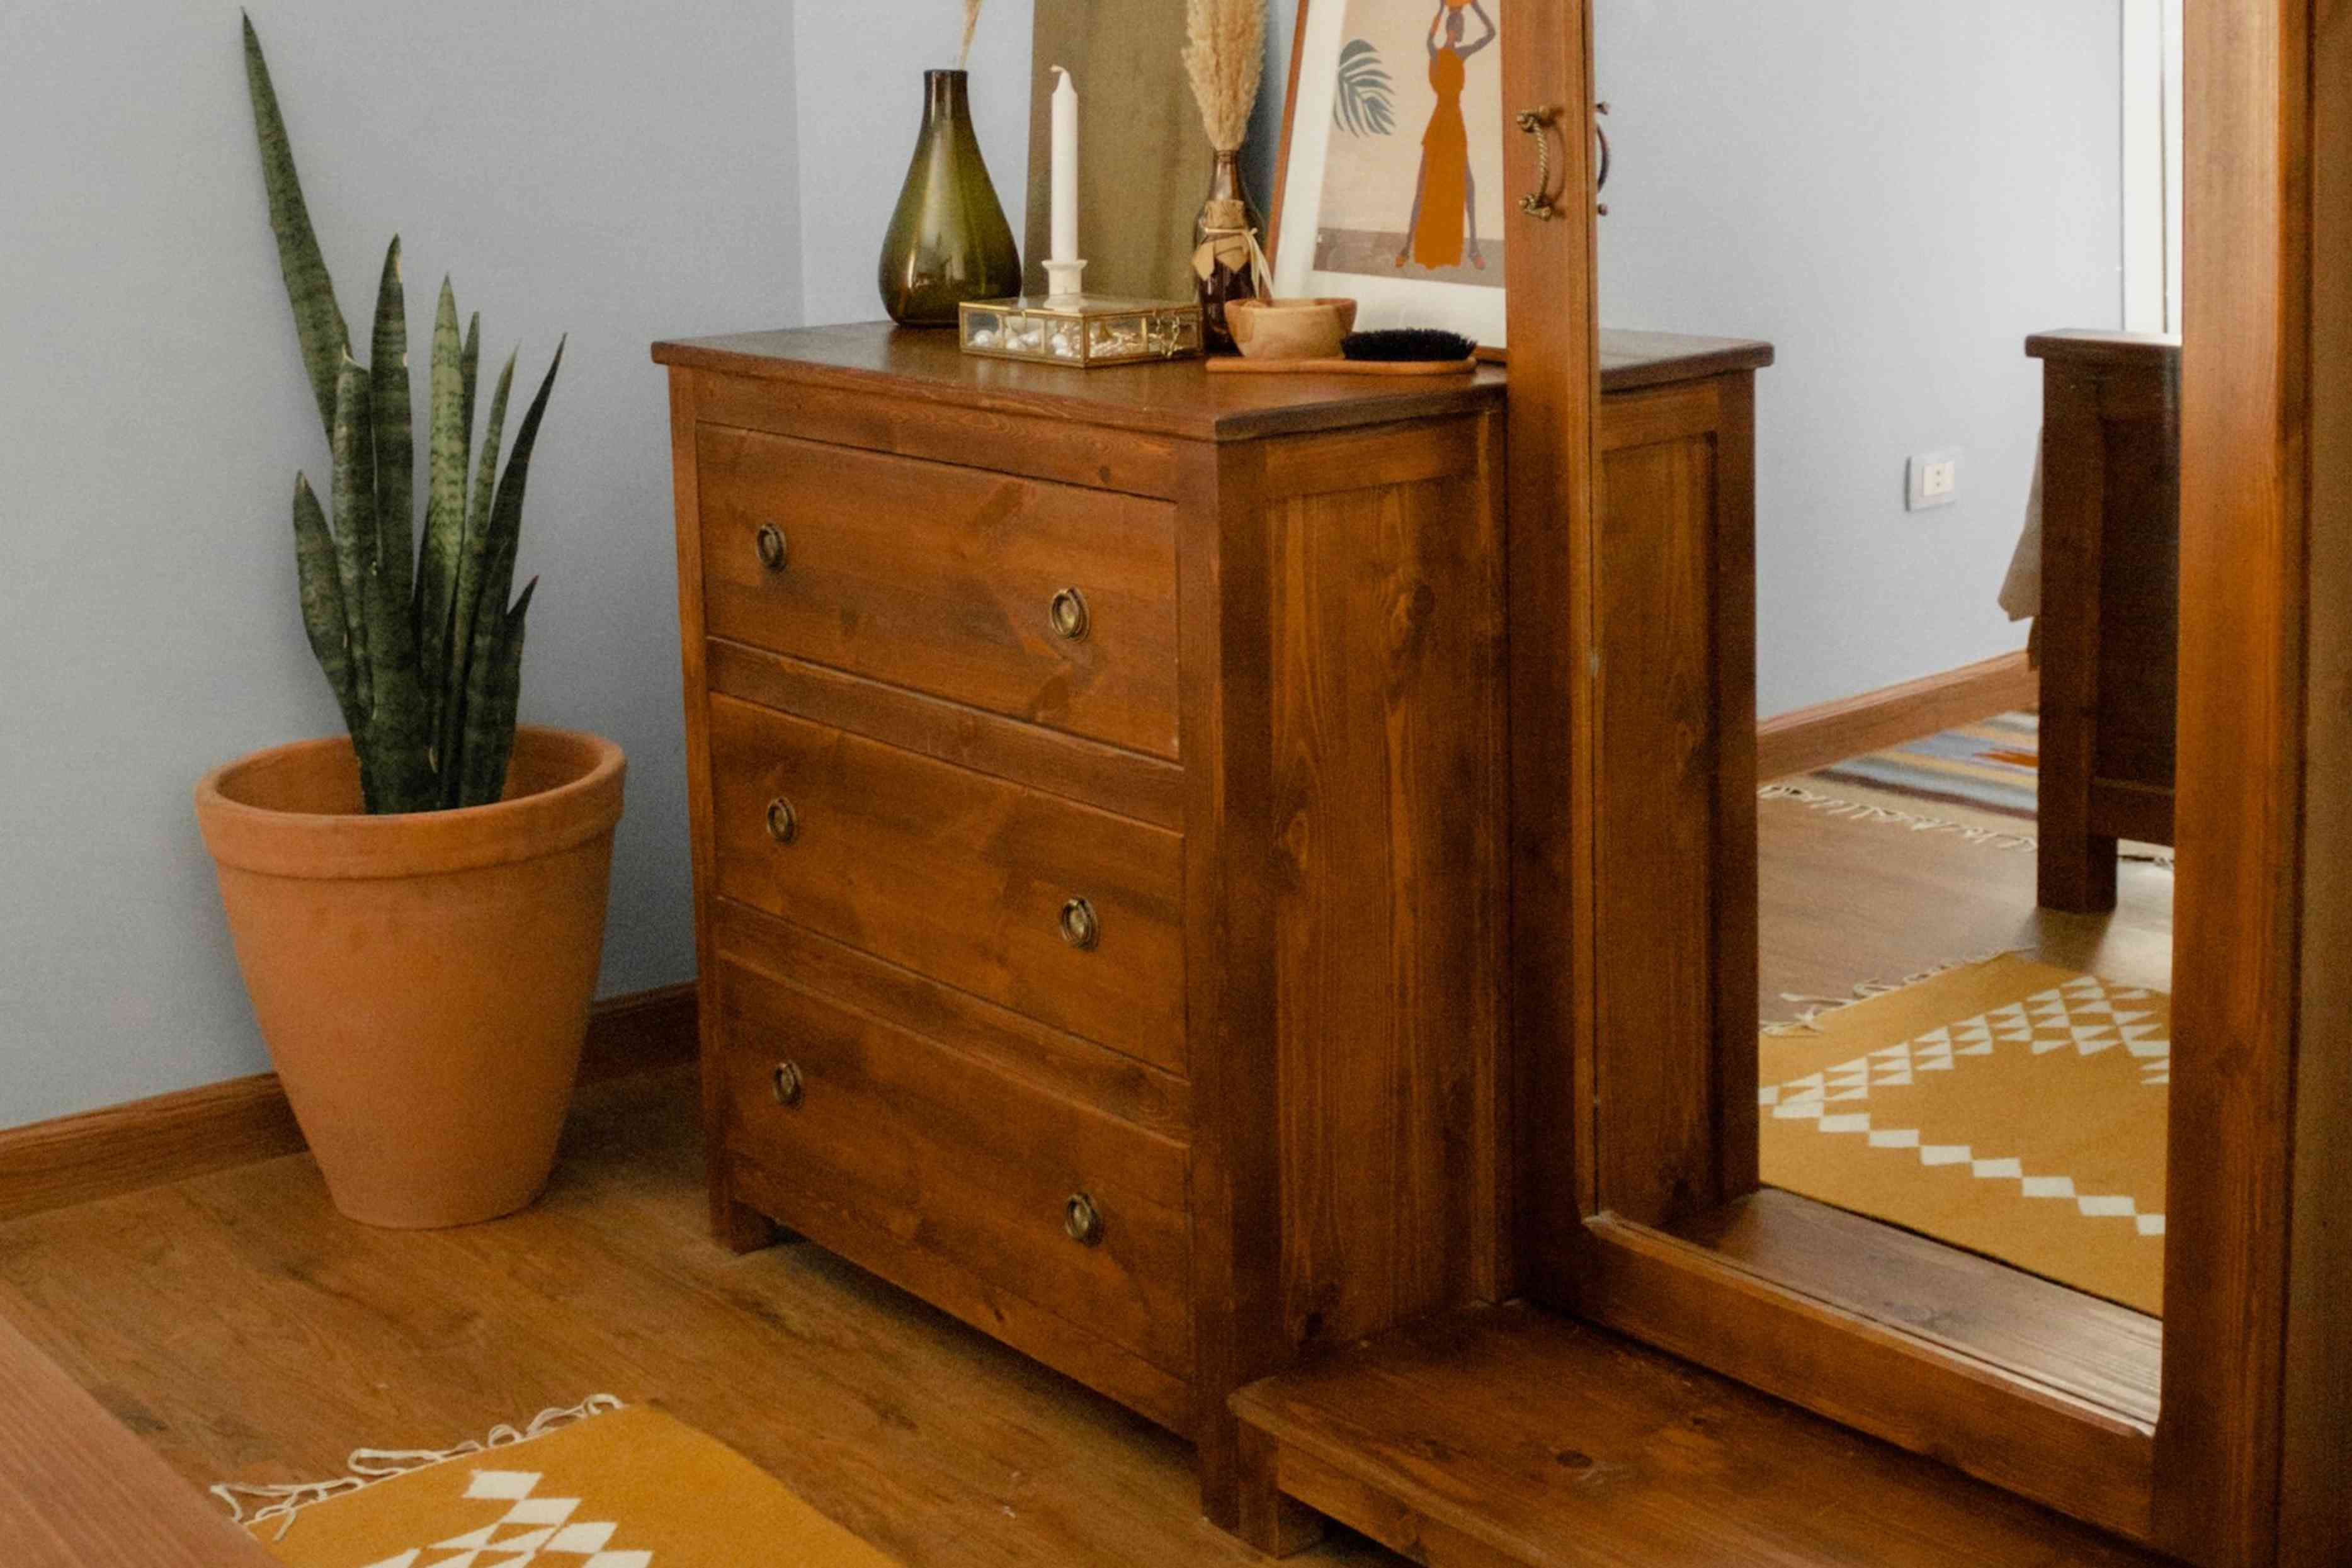 furniture choices in a bedroom